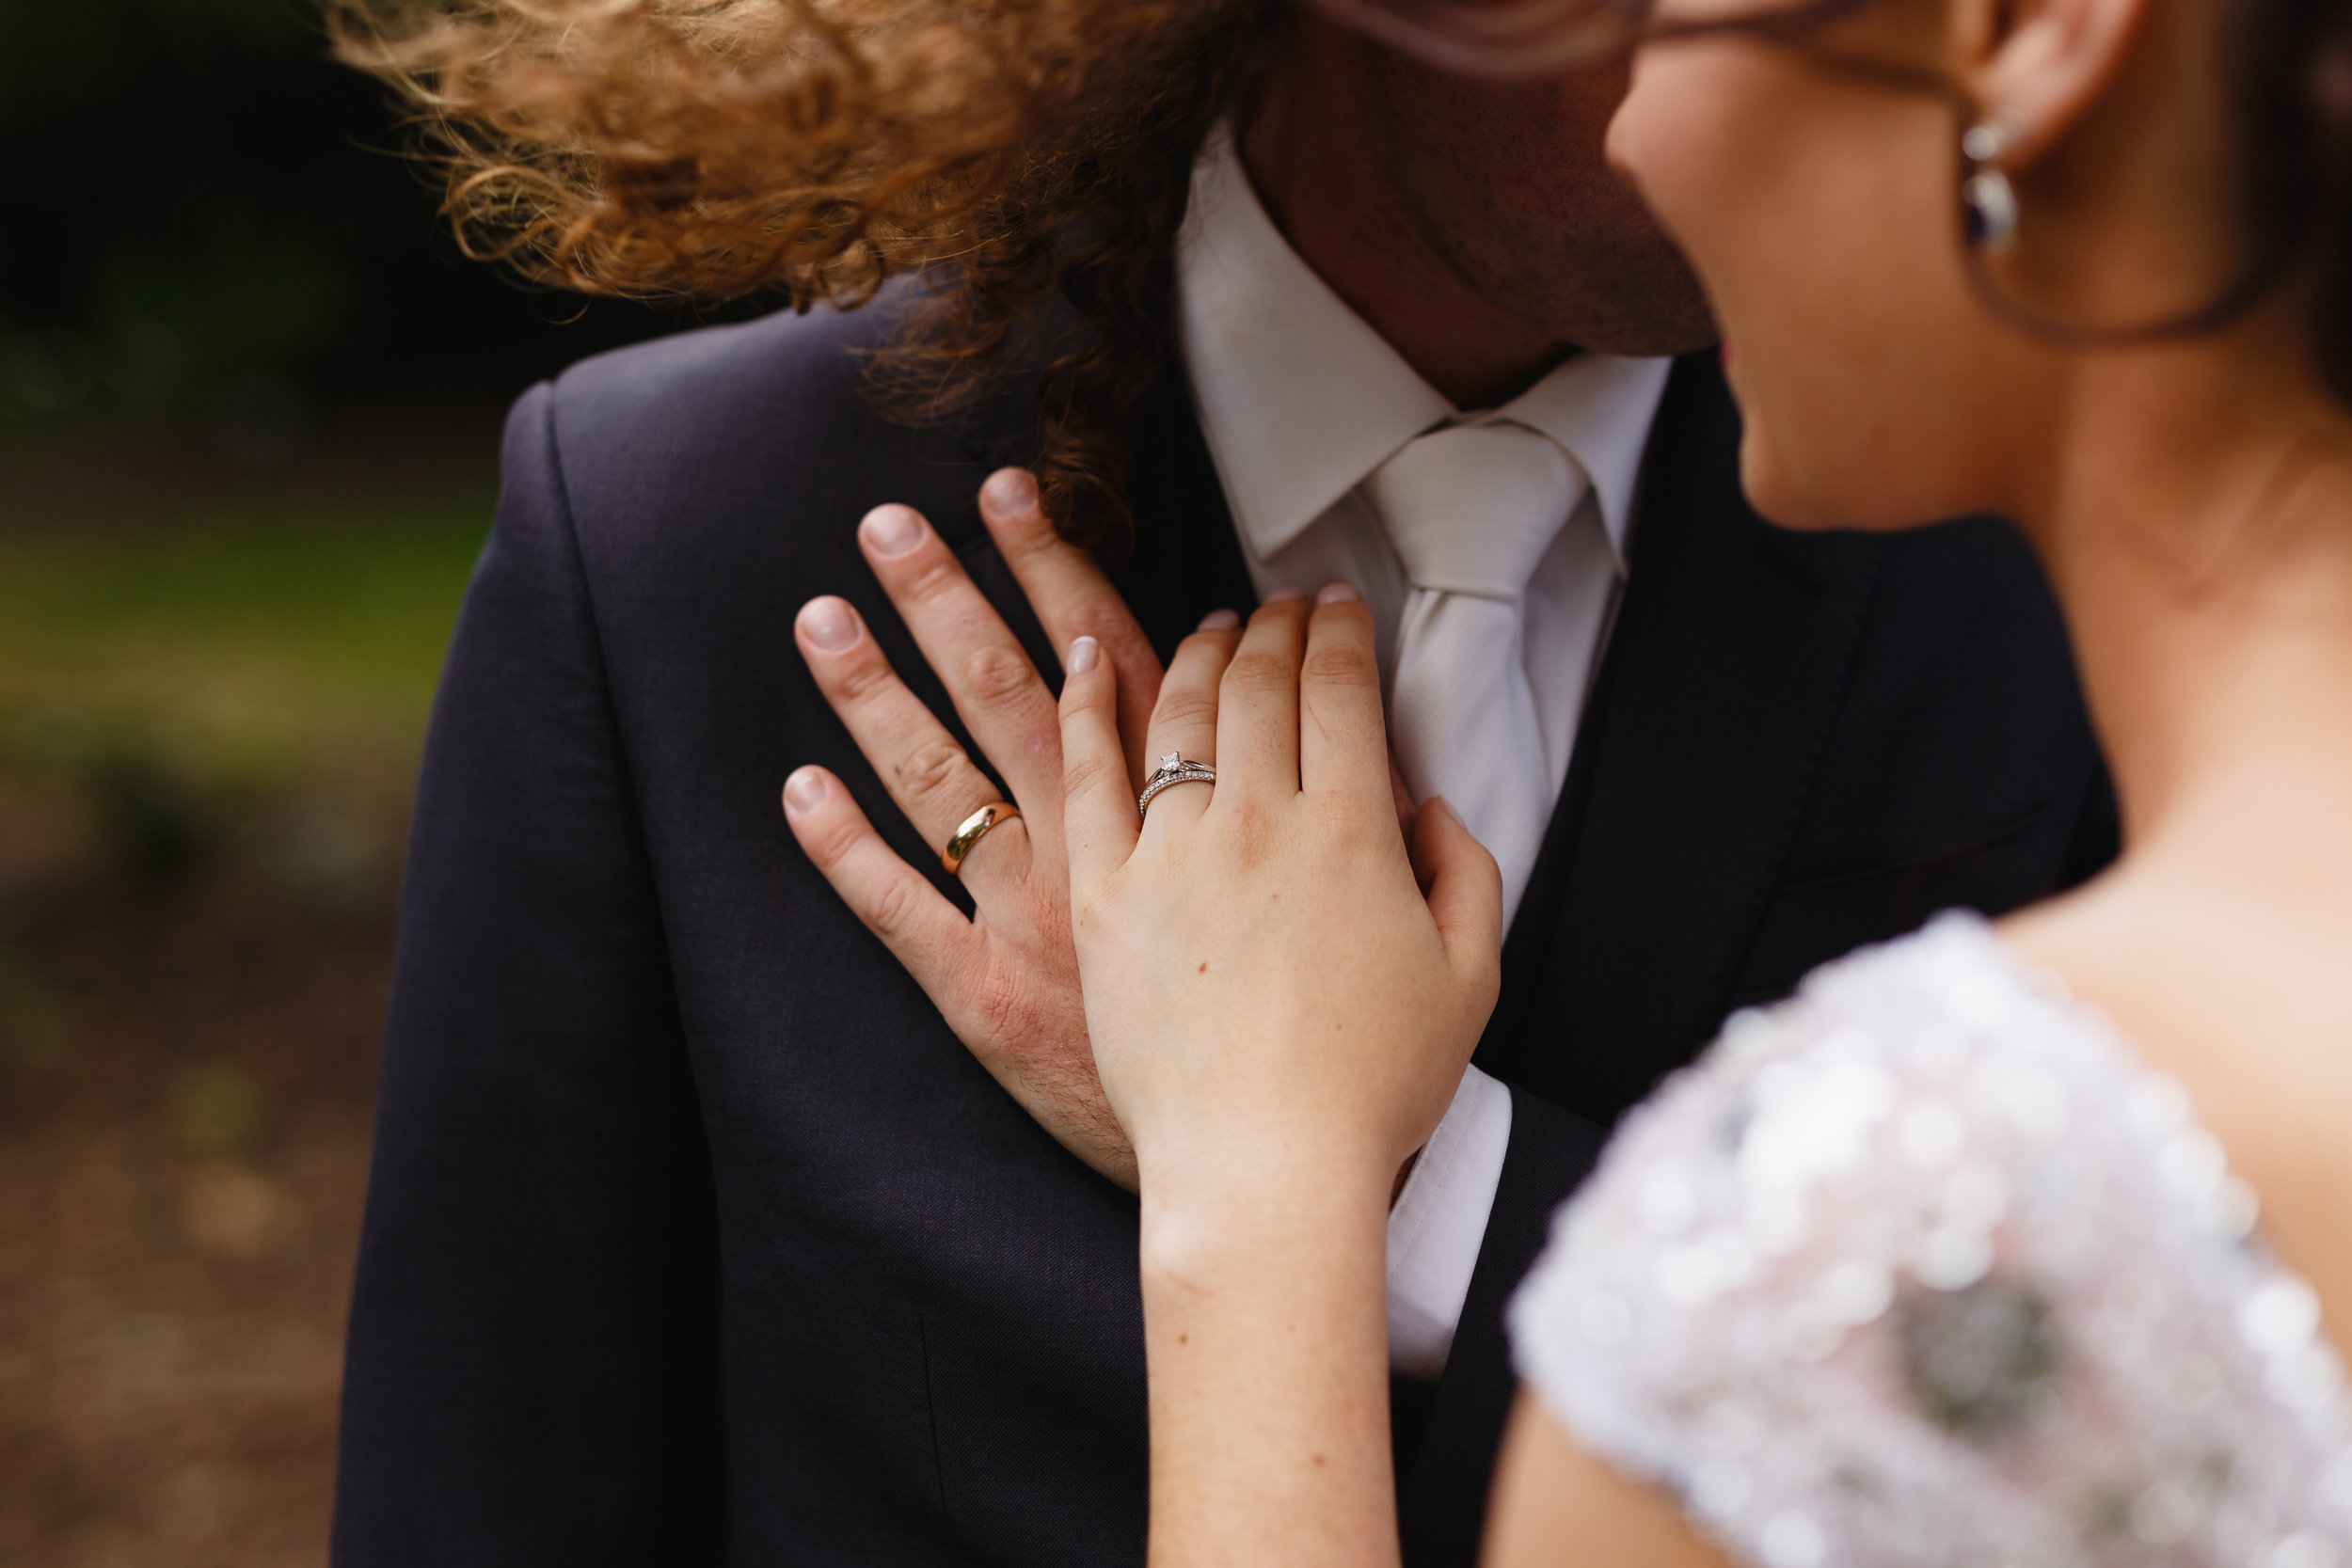 Our_Wedding_Preview-10 3.jpg